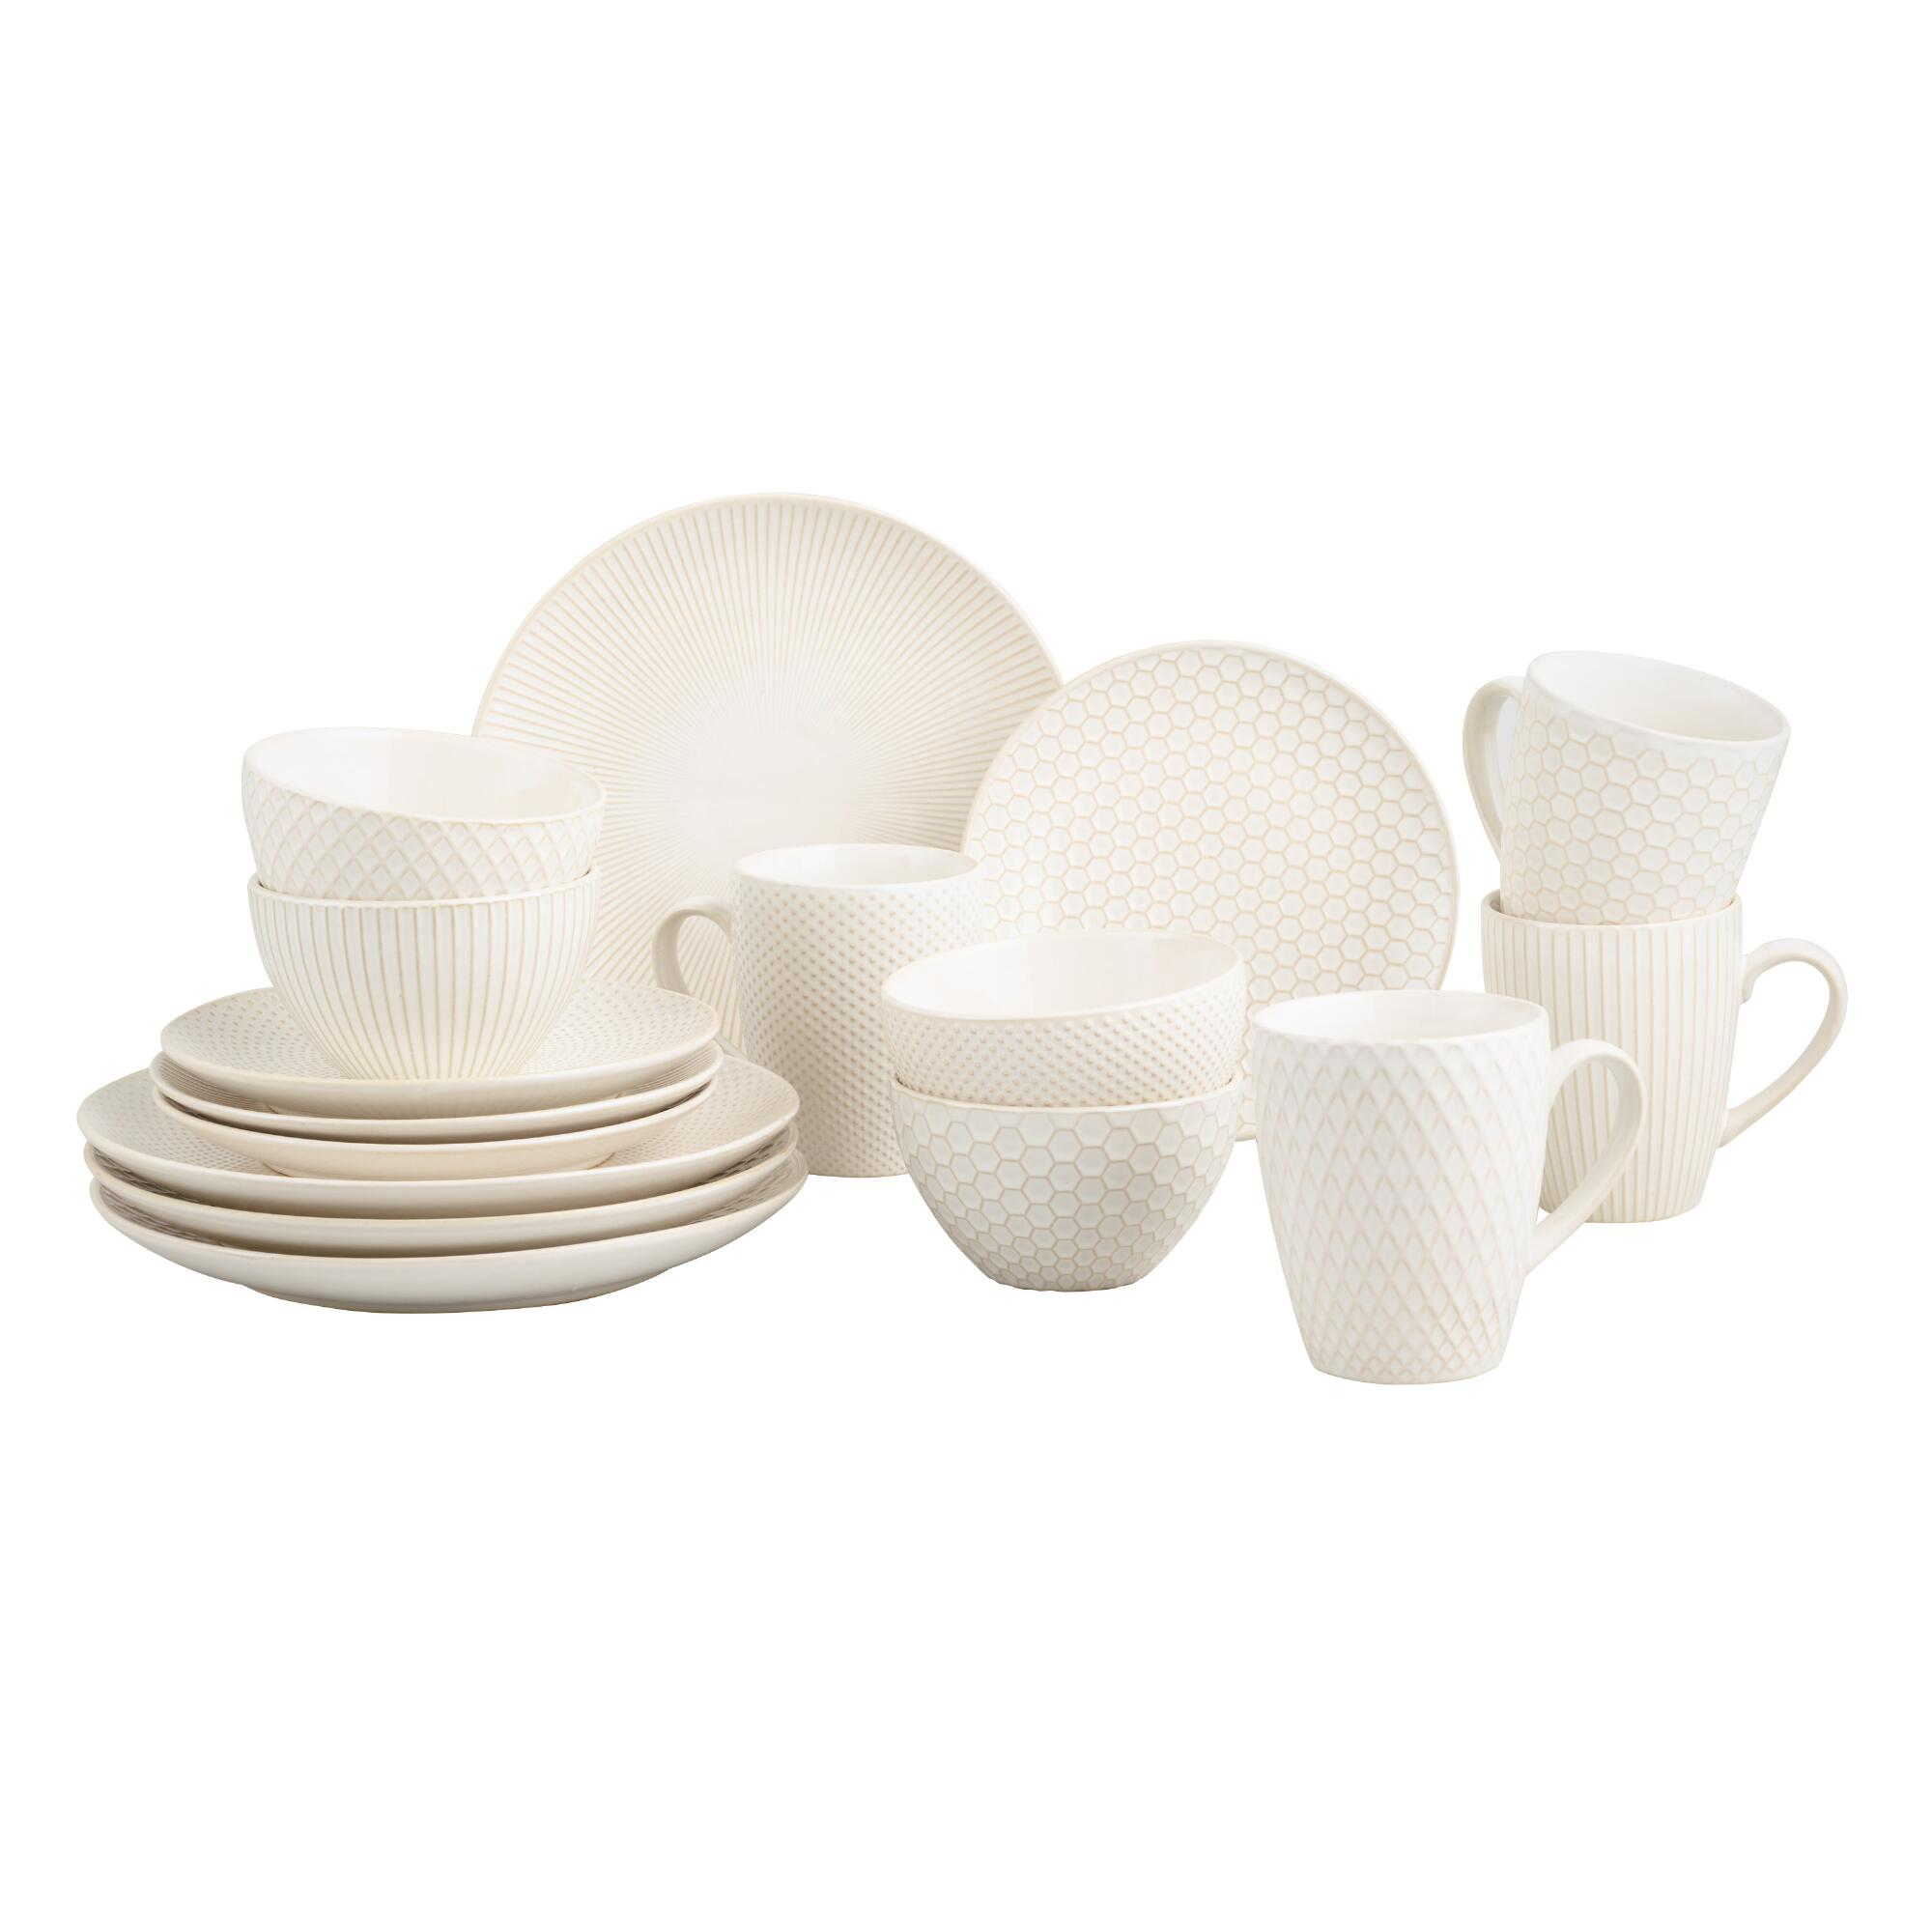 White Textured Stoneware Dinnerware Collection by World Market